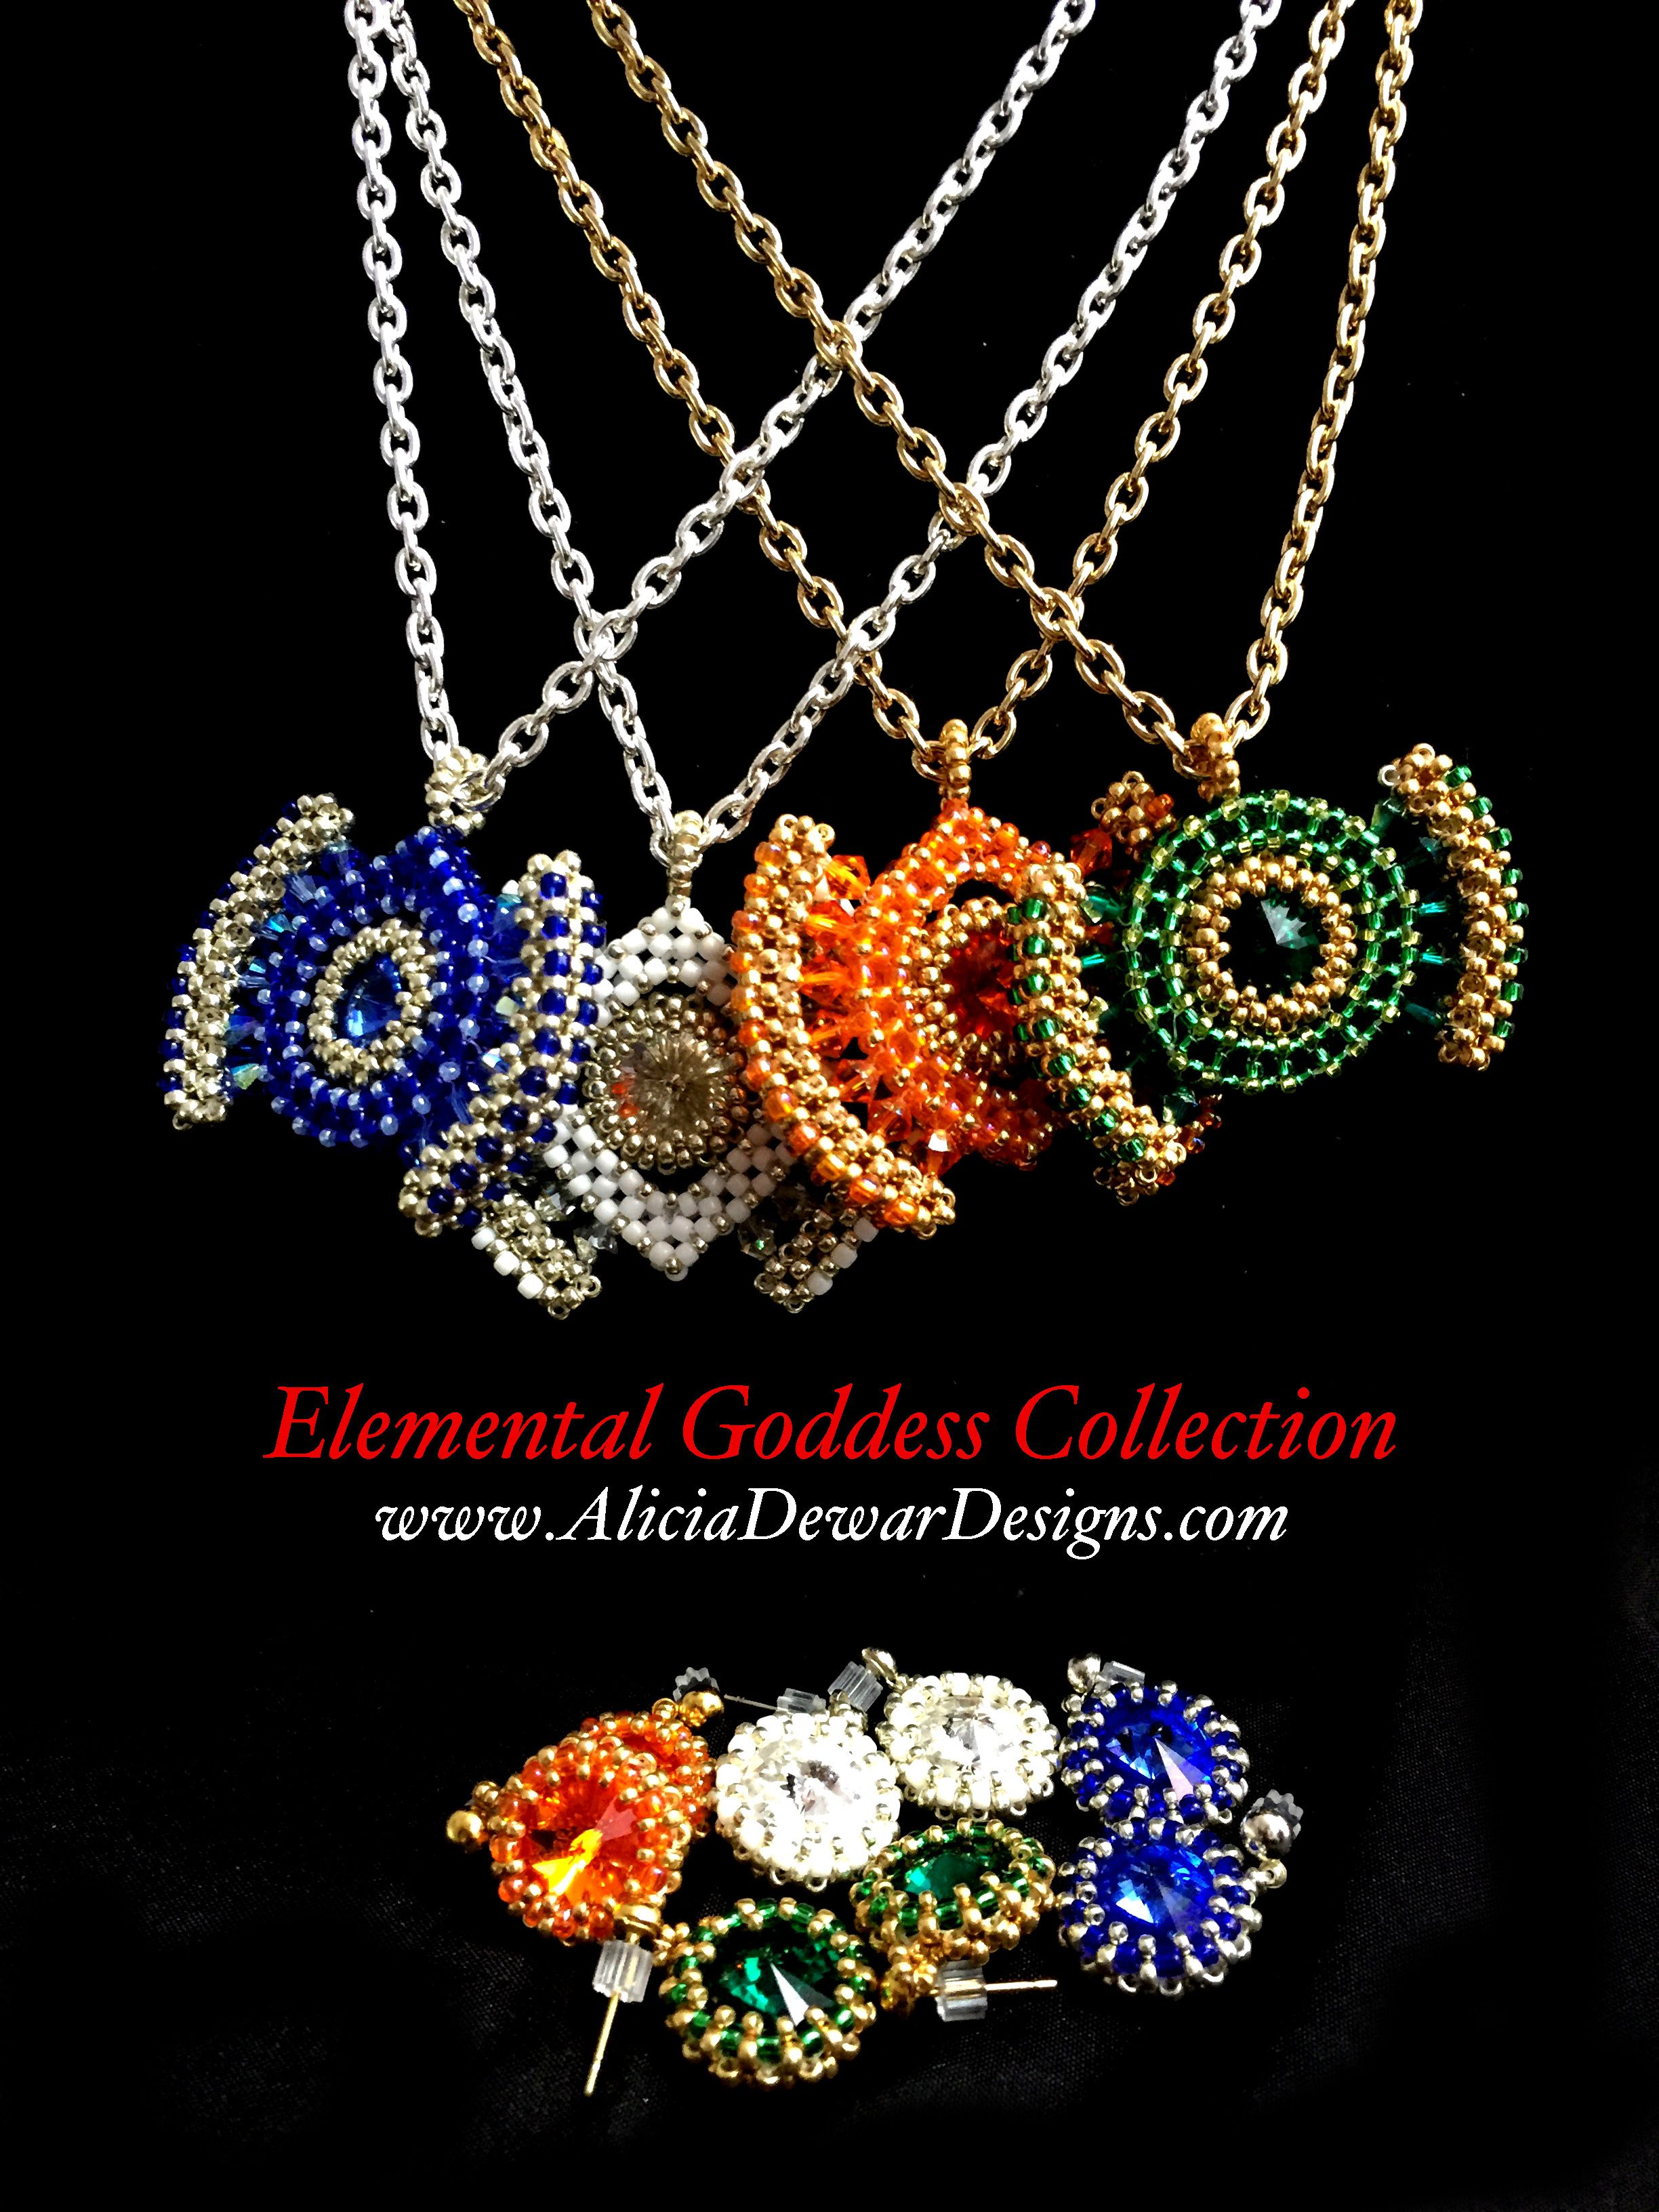 Elemental Goddess Jewelry Collection by Alicia Dewar Designs